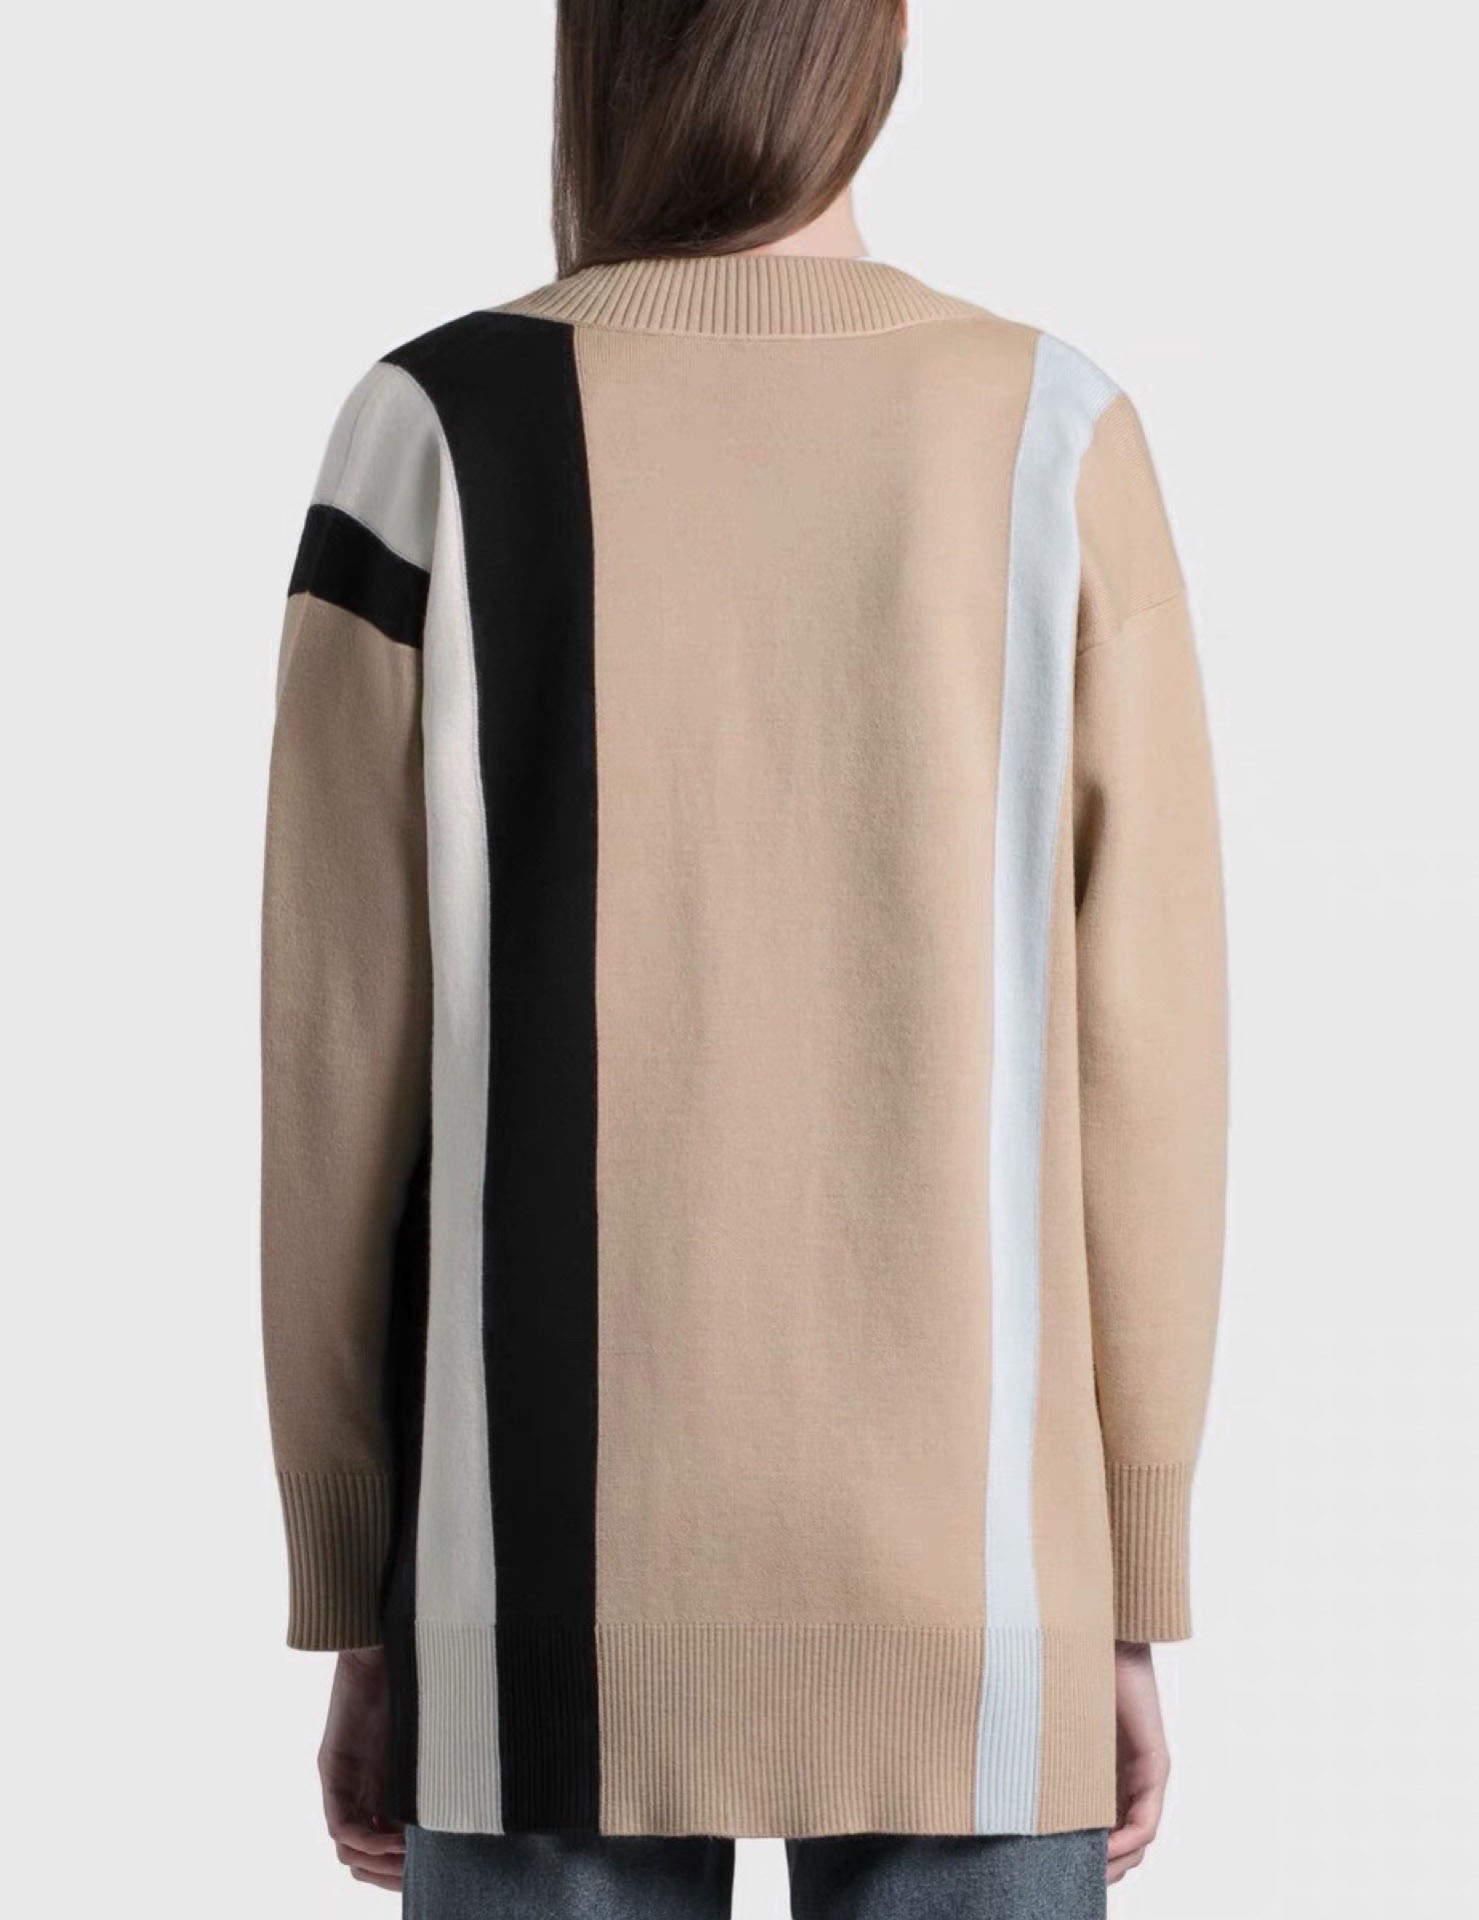 2021 luxury design contrast color stitching fashion long sleeve cardigan temperament versatile loose V-neck knitted sweater coat enlarge